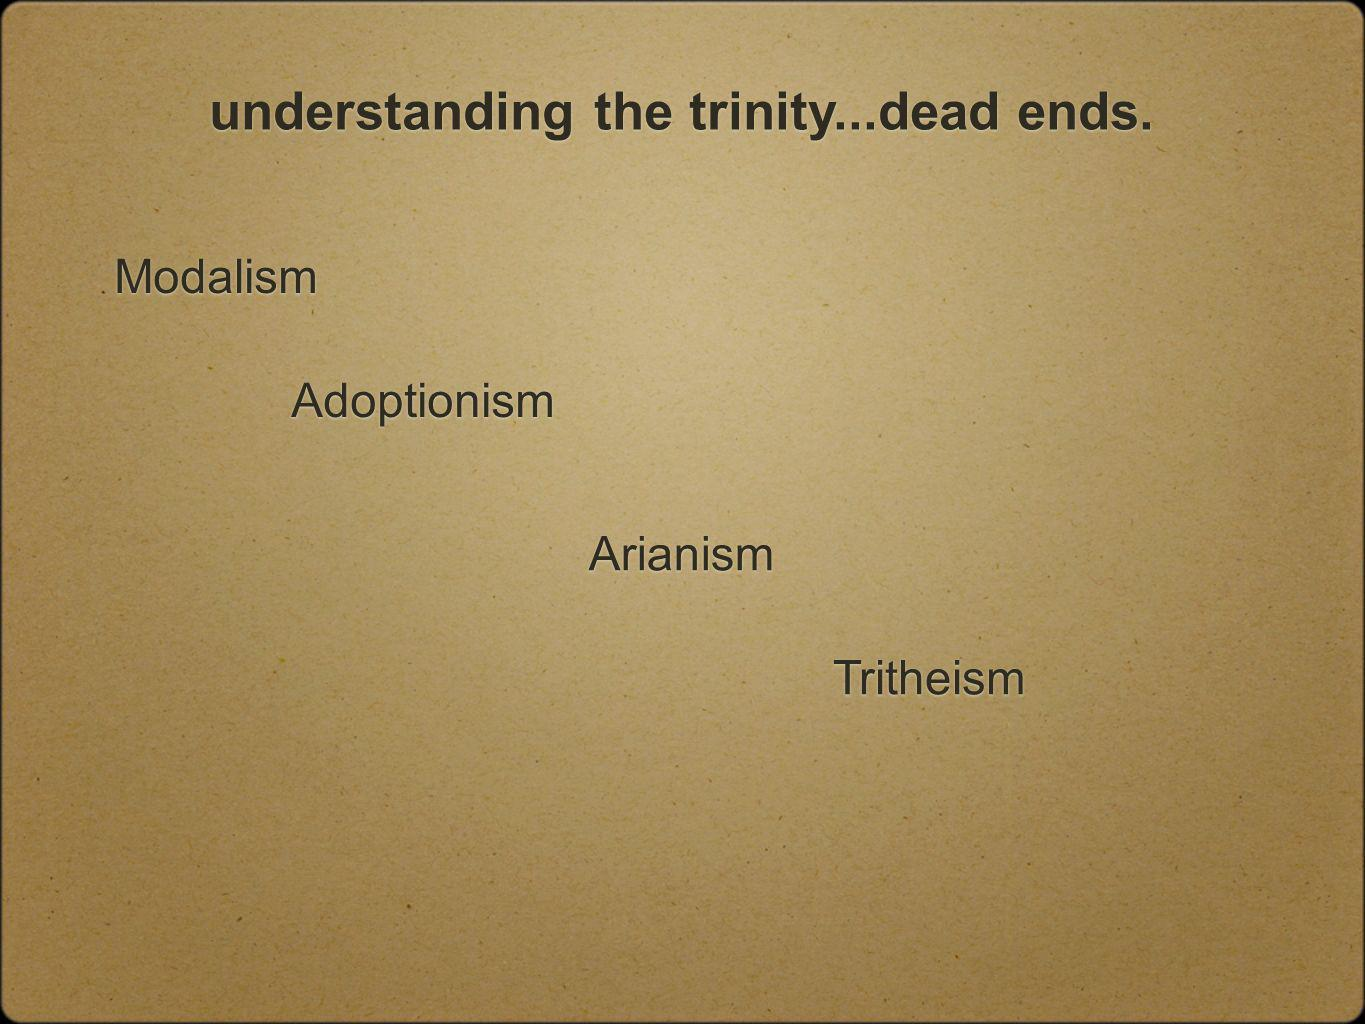 understanding the trinity...dead ends. Modalism Tritheism Adoptionism Arianism